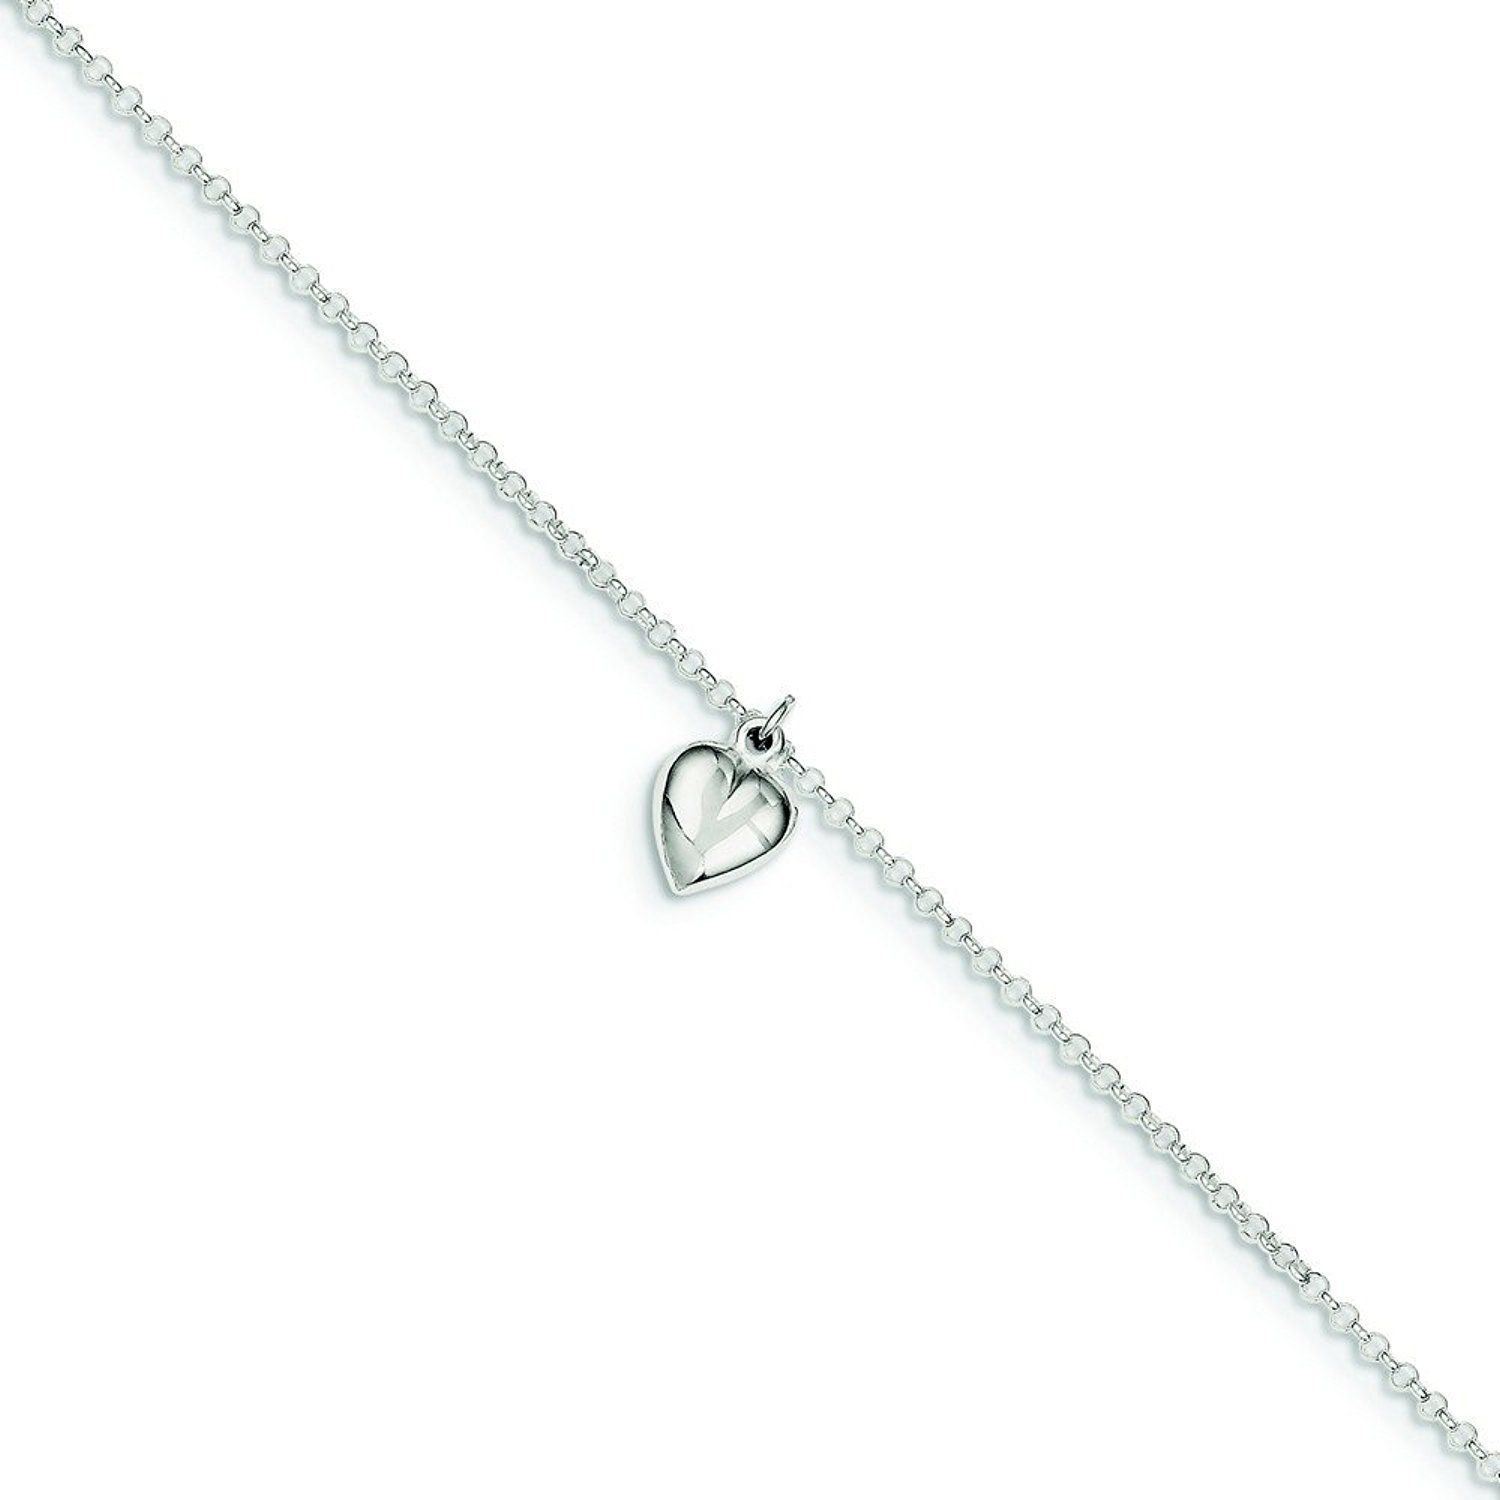 925 Sterling Silver Polished Love Heart Anklet With 1inch Ext 9 Inch Jewelry Gifts for Women